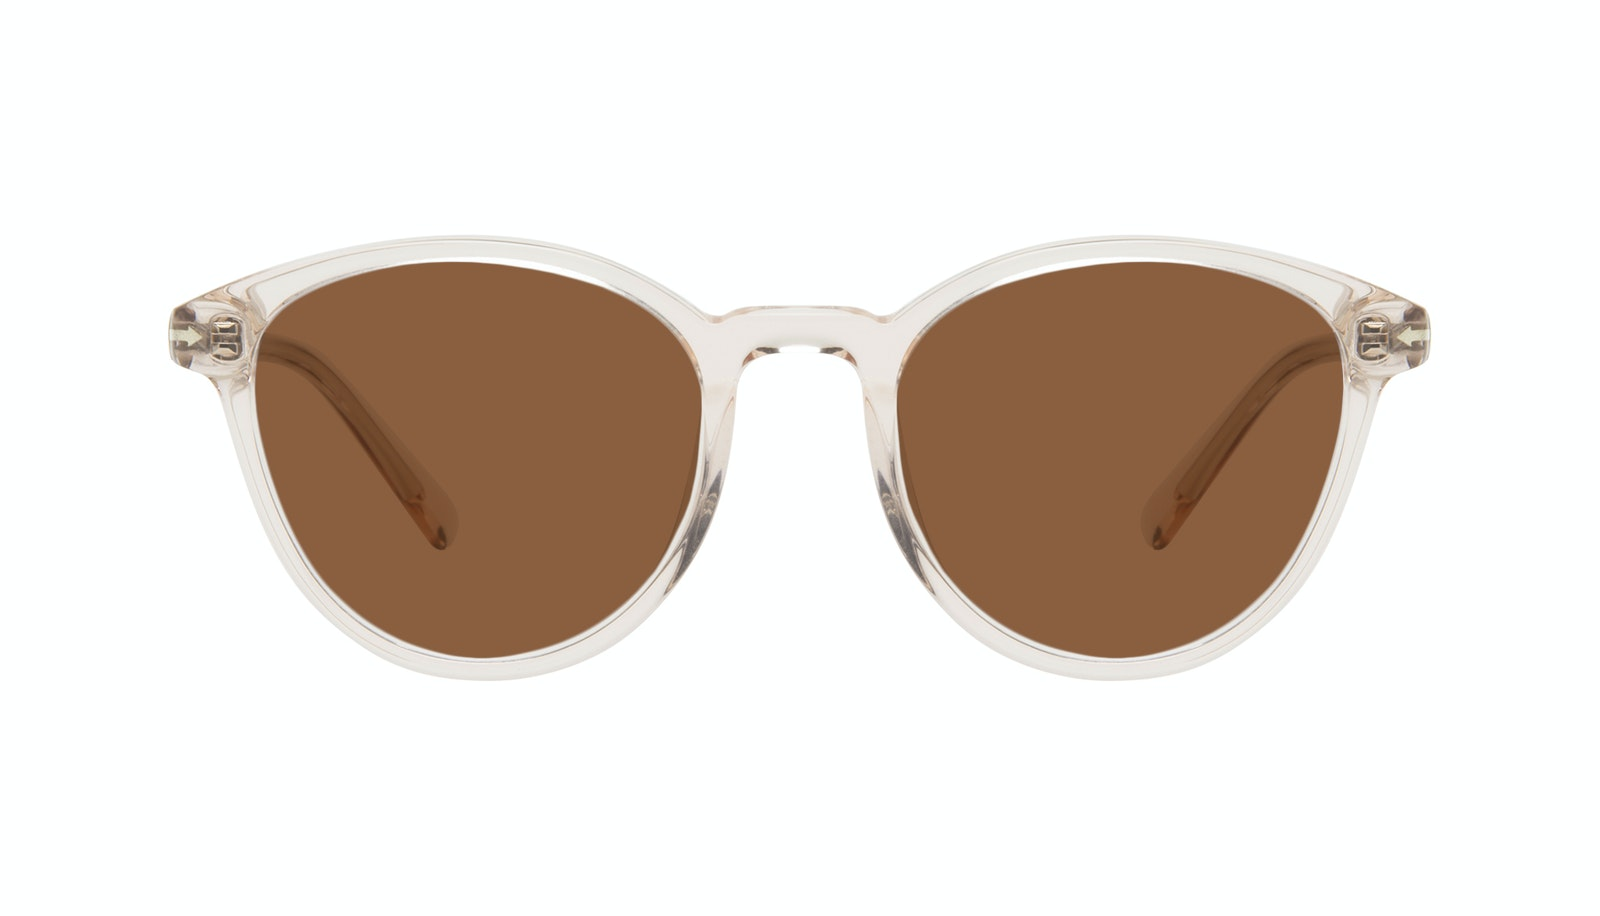 Affordable Fashion Glasses Round Sunglasses Women London Vanilla